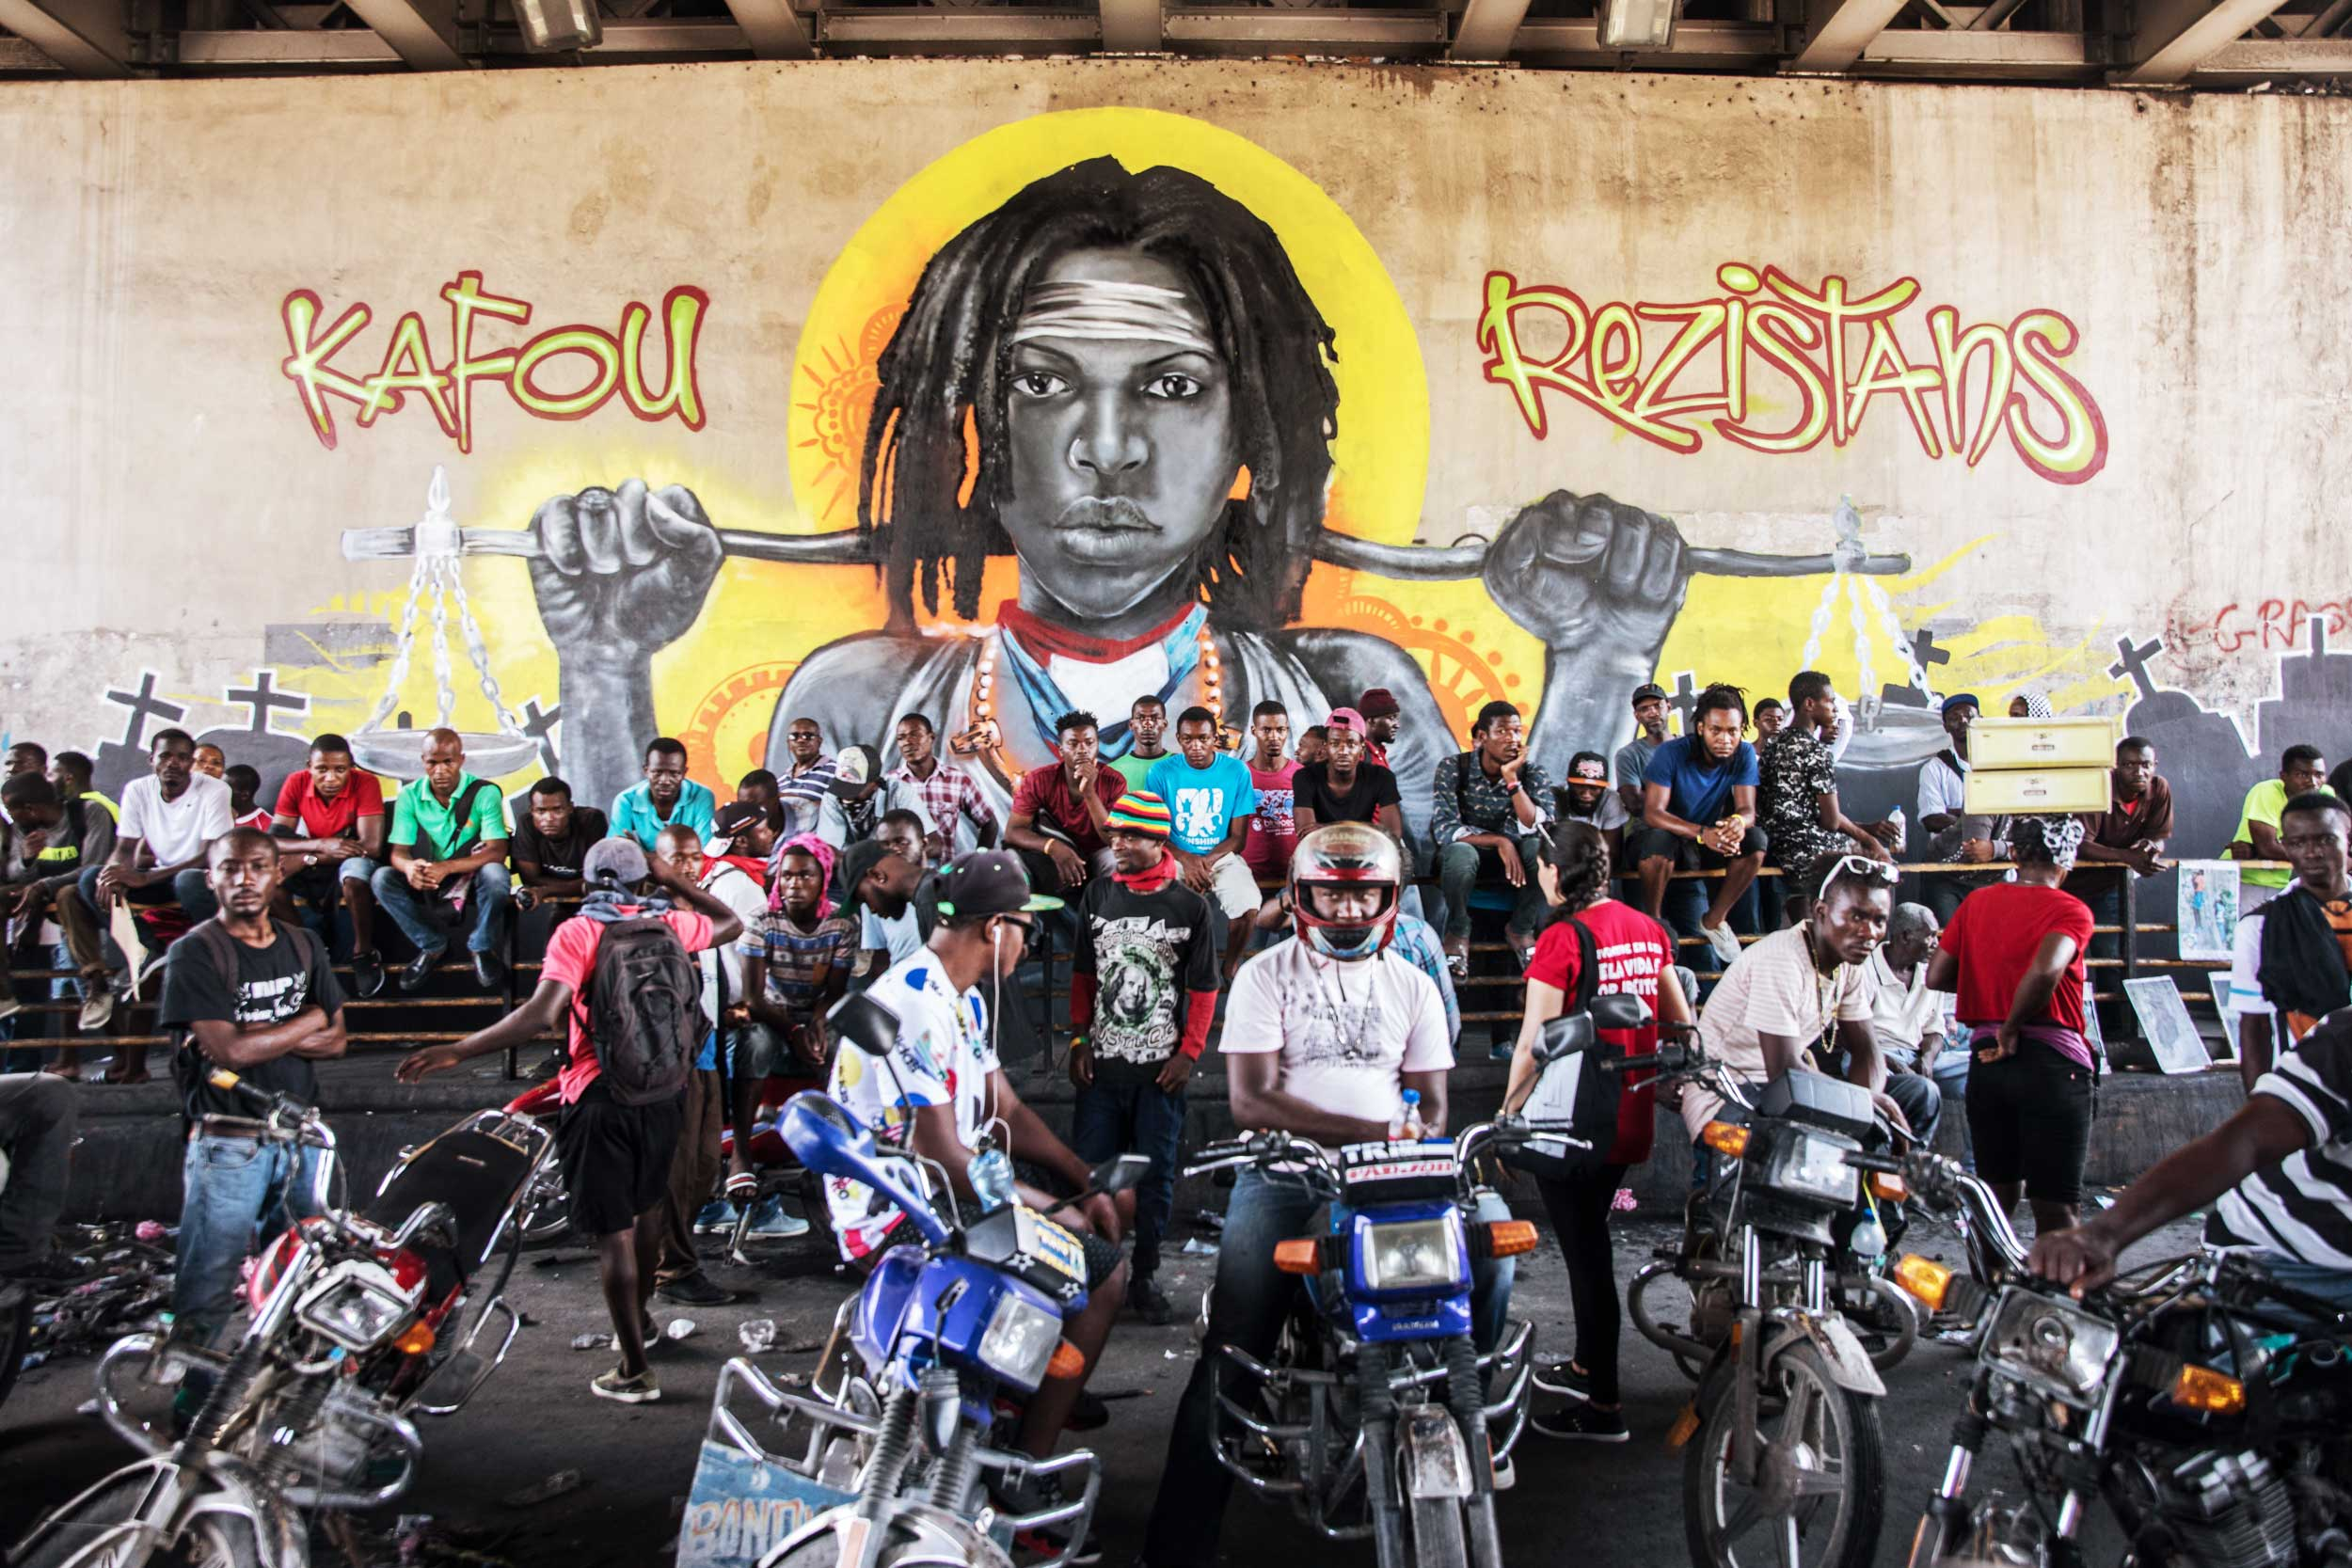 """Haitian demonstrators gather in front of a mural of a person's head and the words, """"Kafou rezistans."""""""